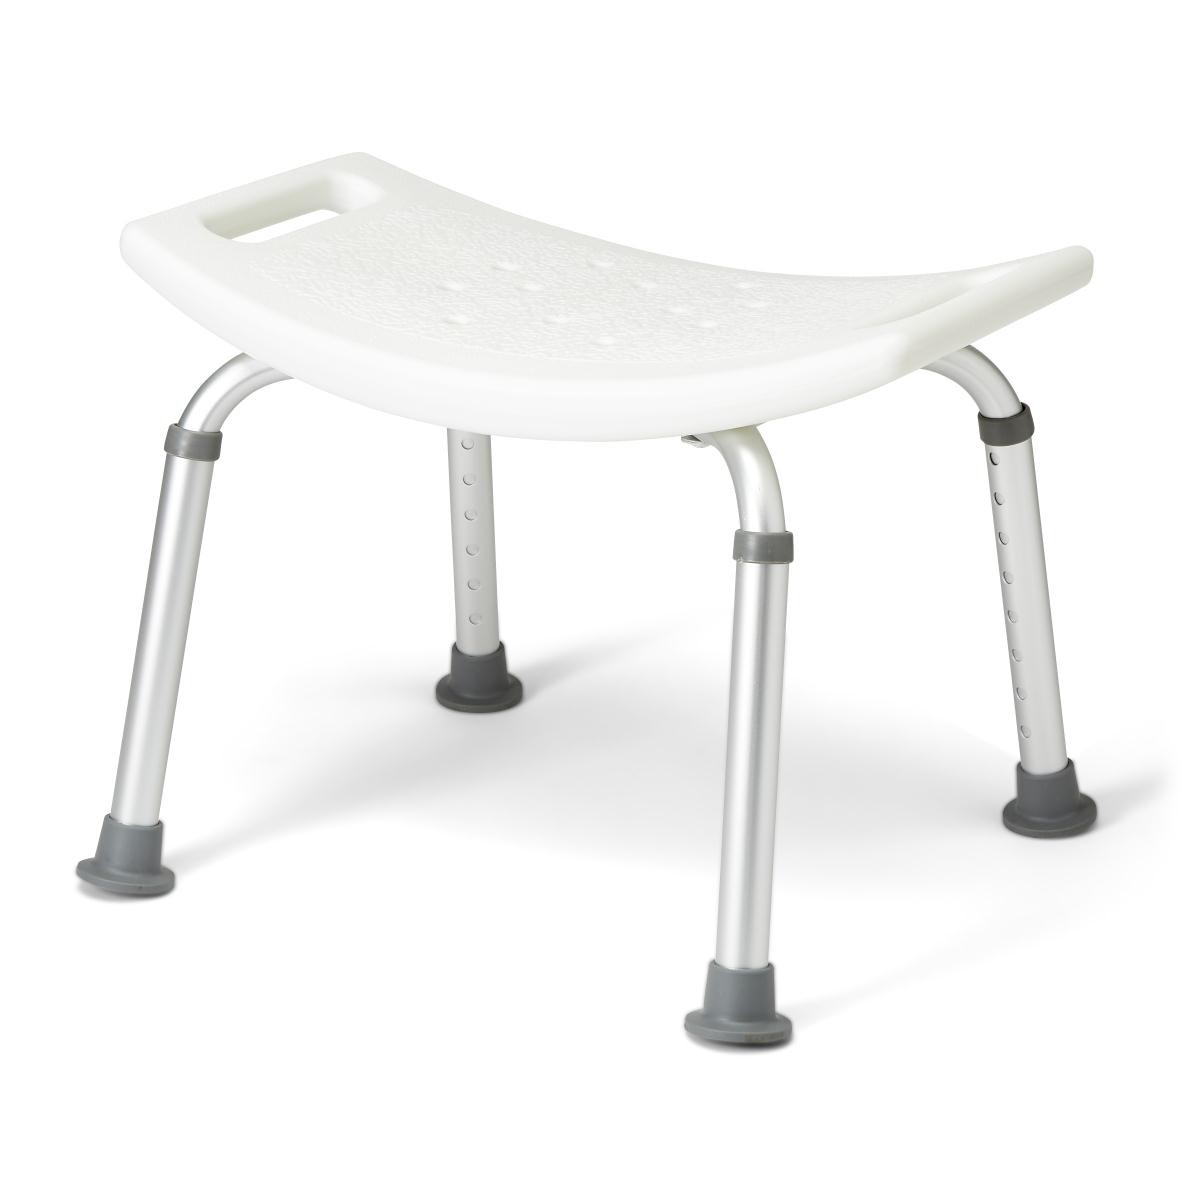 Tremendous Medline Aluminum Bath Benches Without Back White Sku Ml Mds89740A Beatyapartments Chair Design Images Beatyapartmentscom